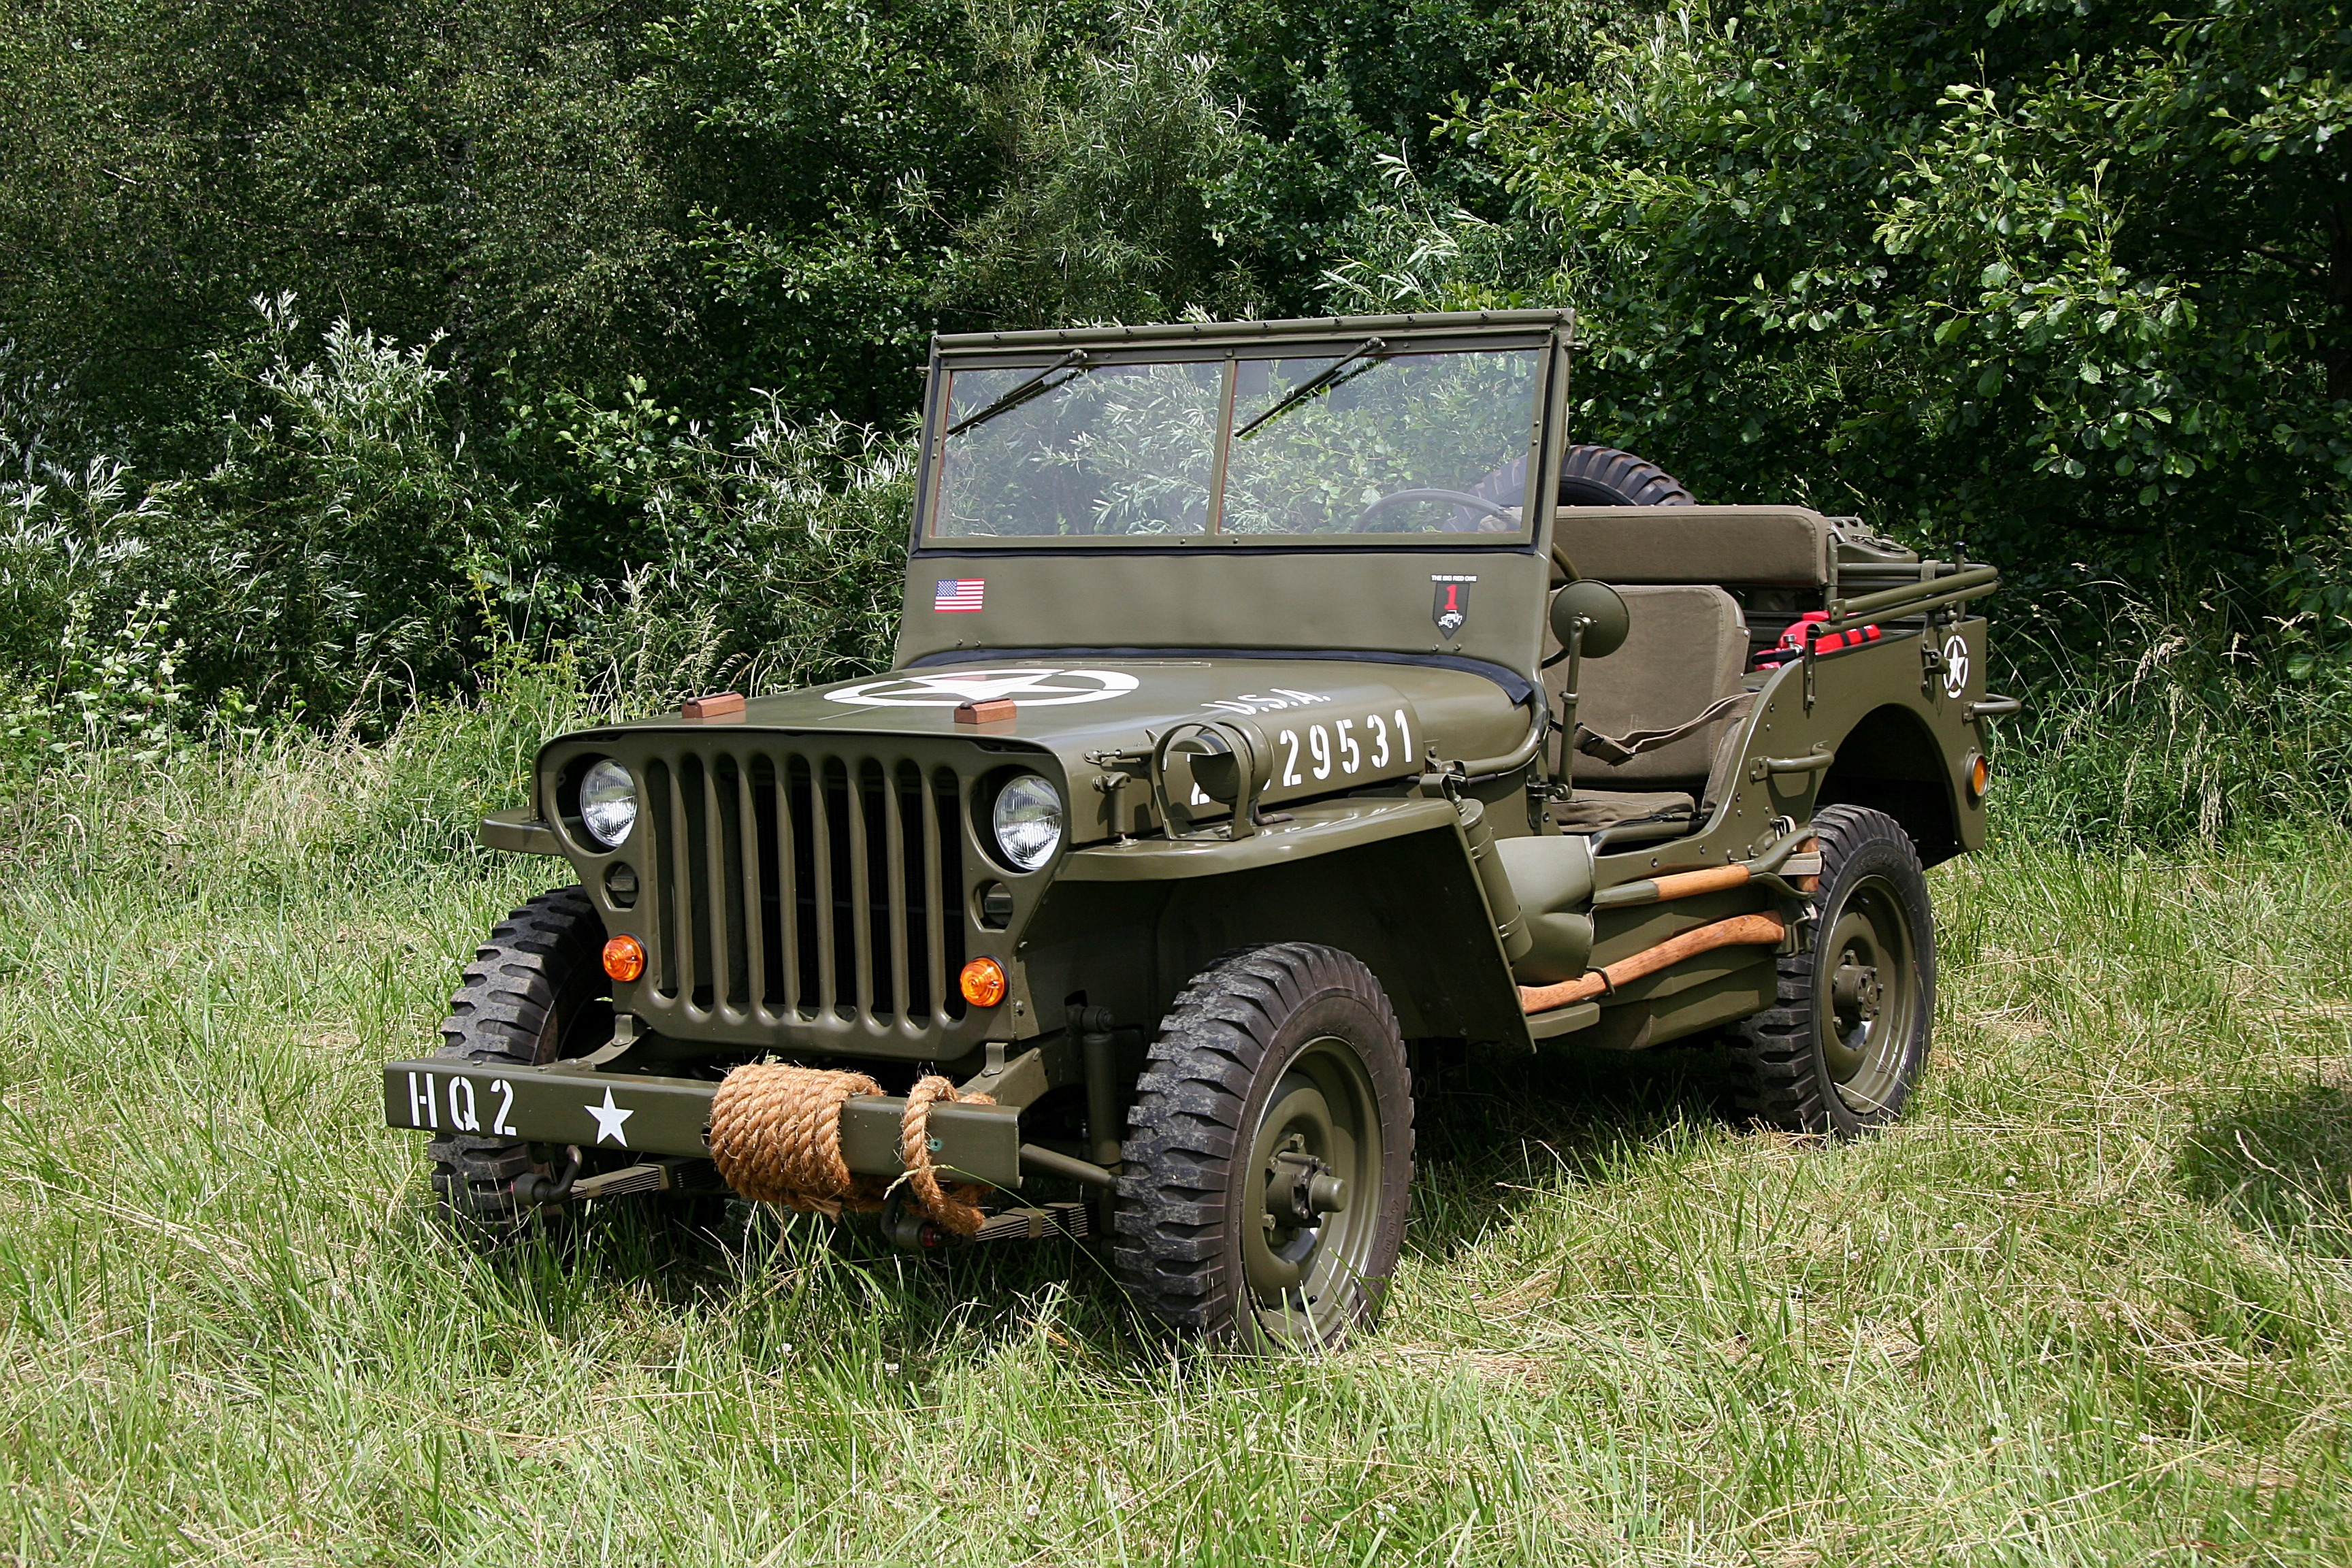 jeep ww2 willys retro military wallpaper 3456x2304 178484 wallpaperup. Black Bedroom Furniture Sets. Home Design Ideas